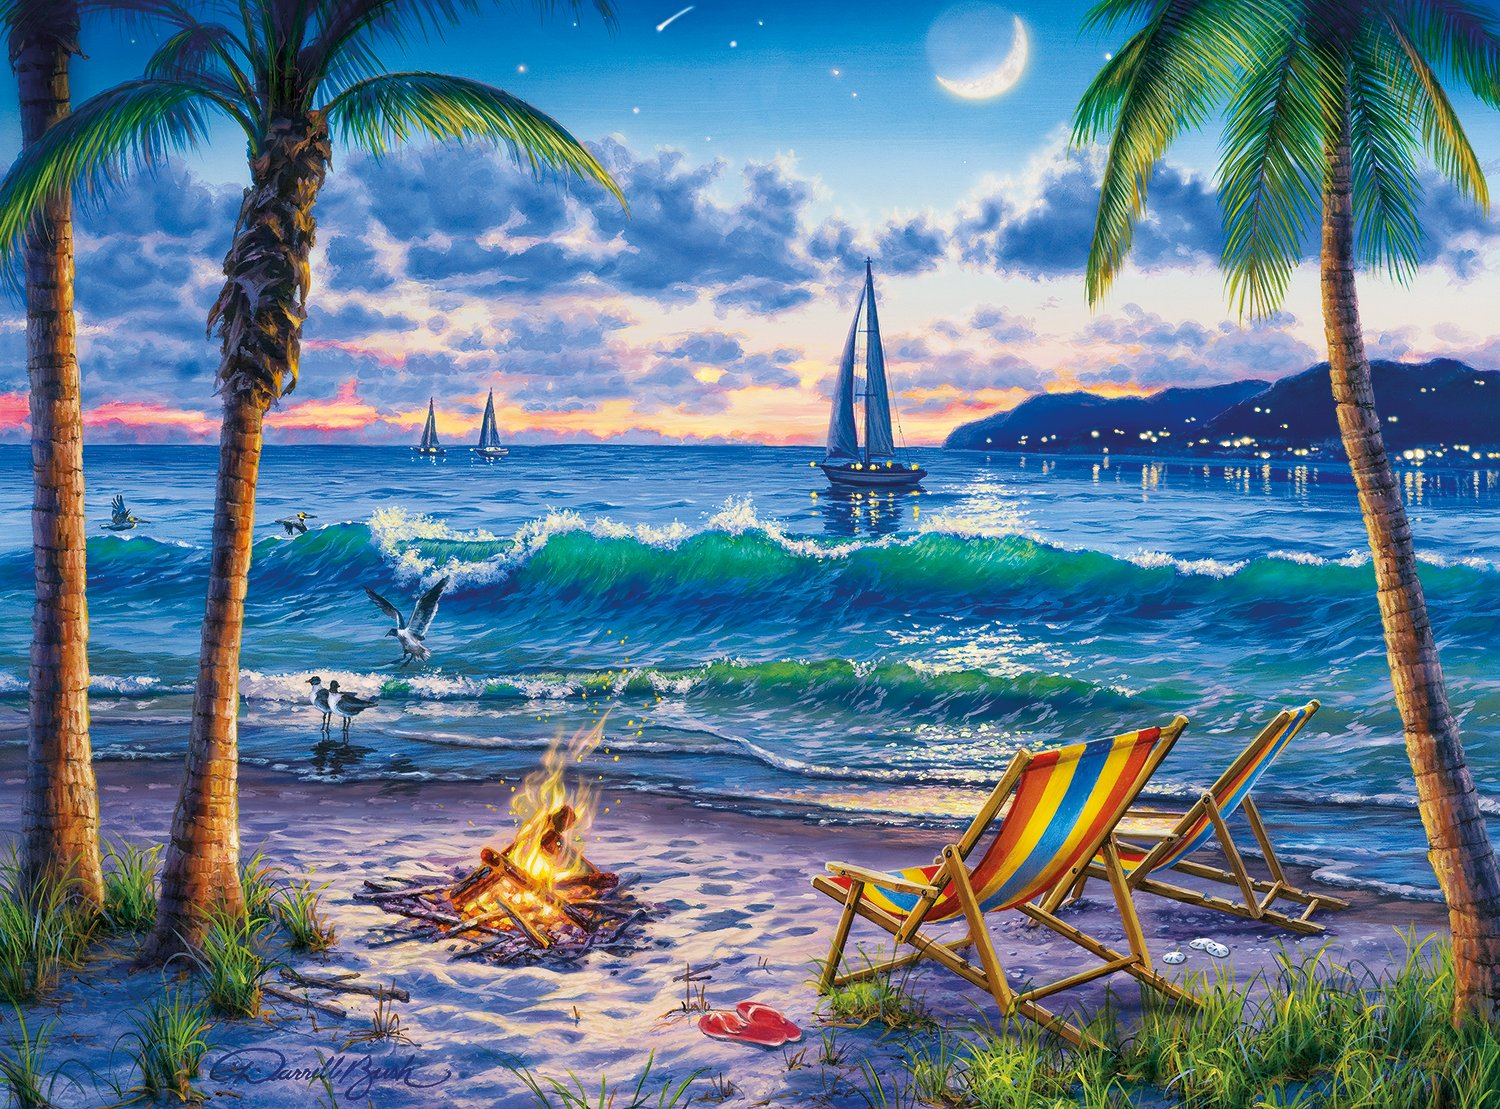 Buffalo Games - Darrell Bush - Coastal Twilight - 1000 Piece Jigsaw Puzzle by Buffalo Games